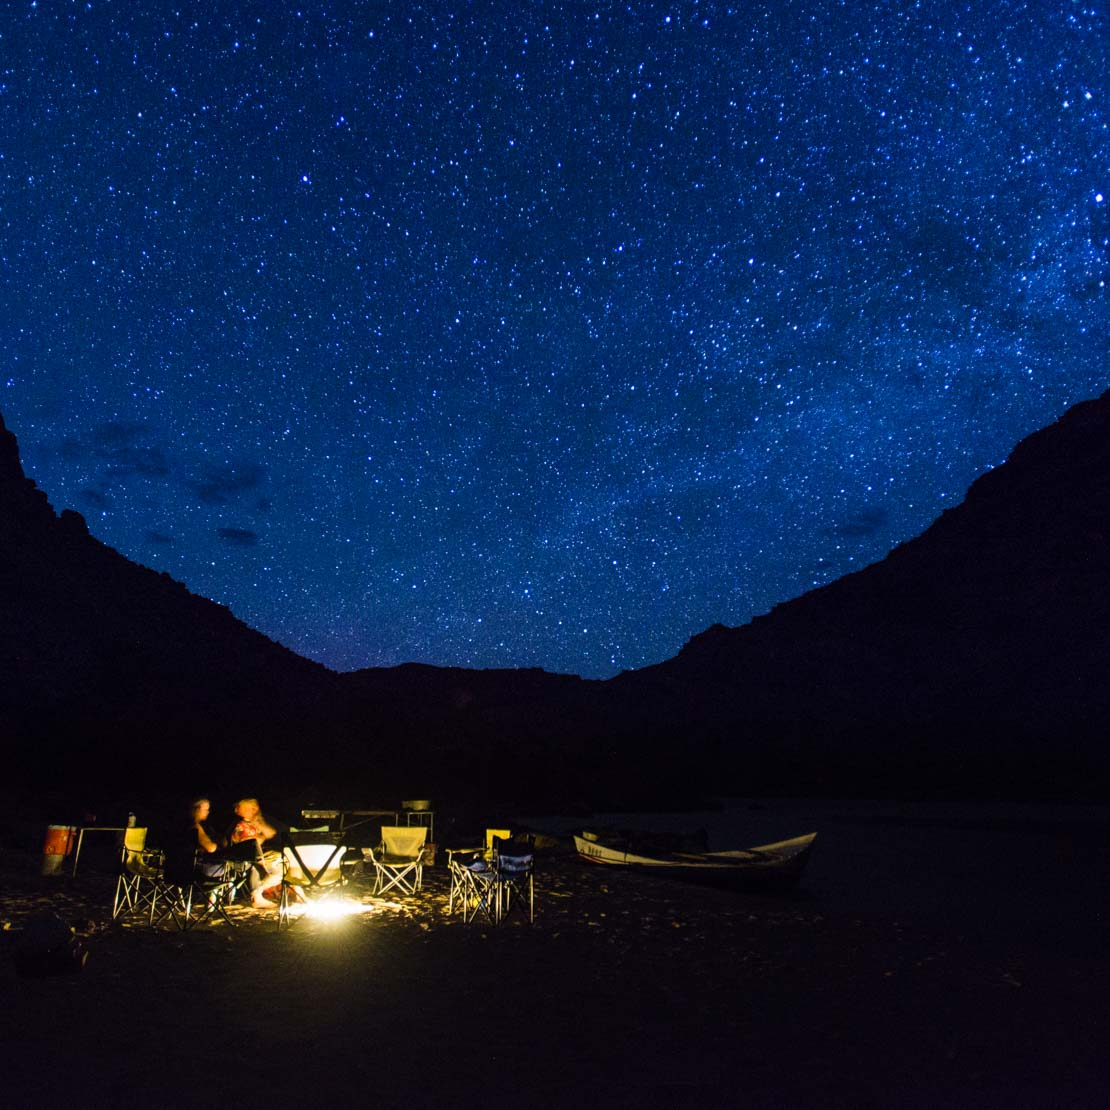 star gazing and astronomy - photo #19